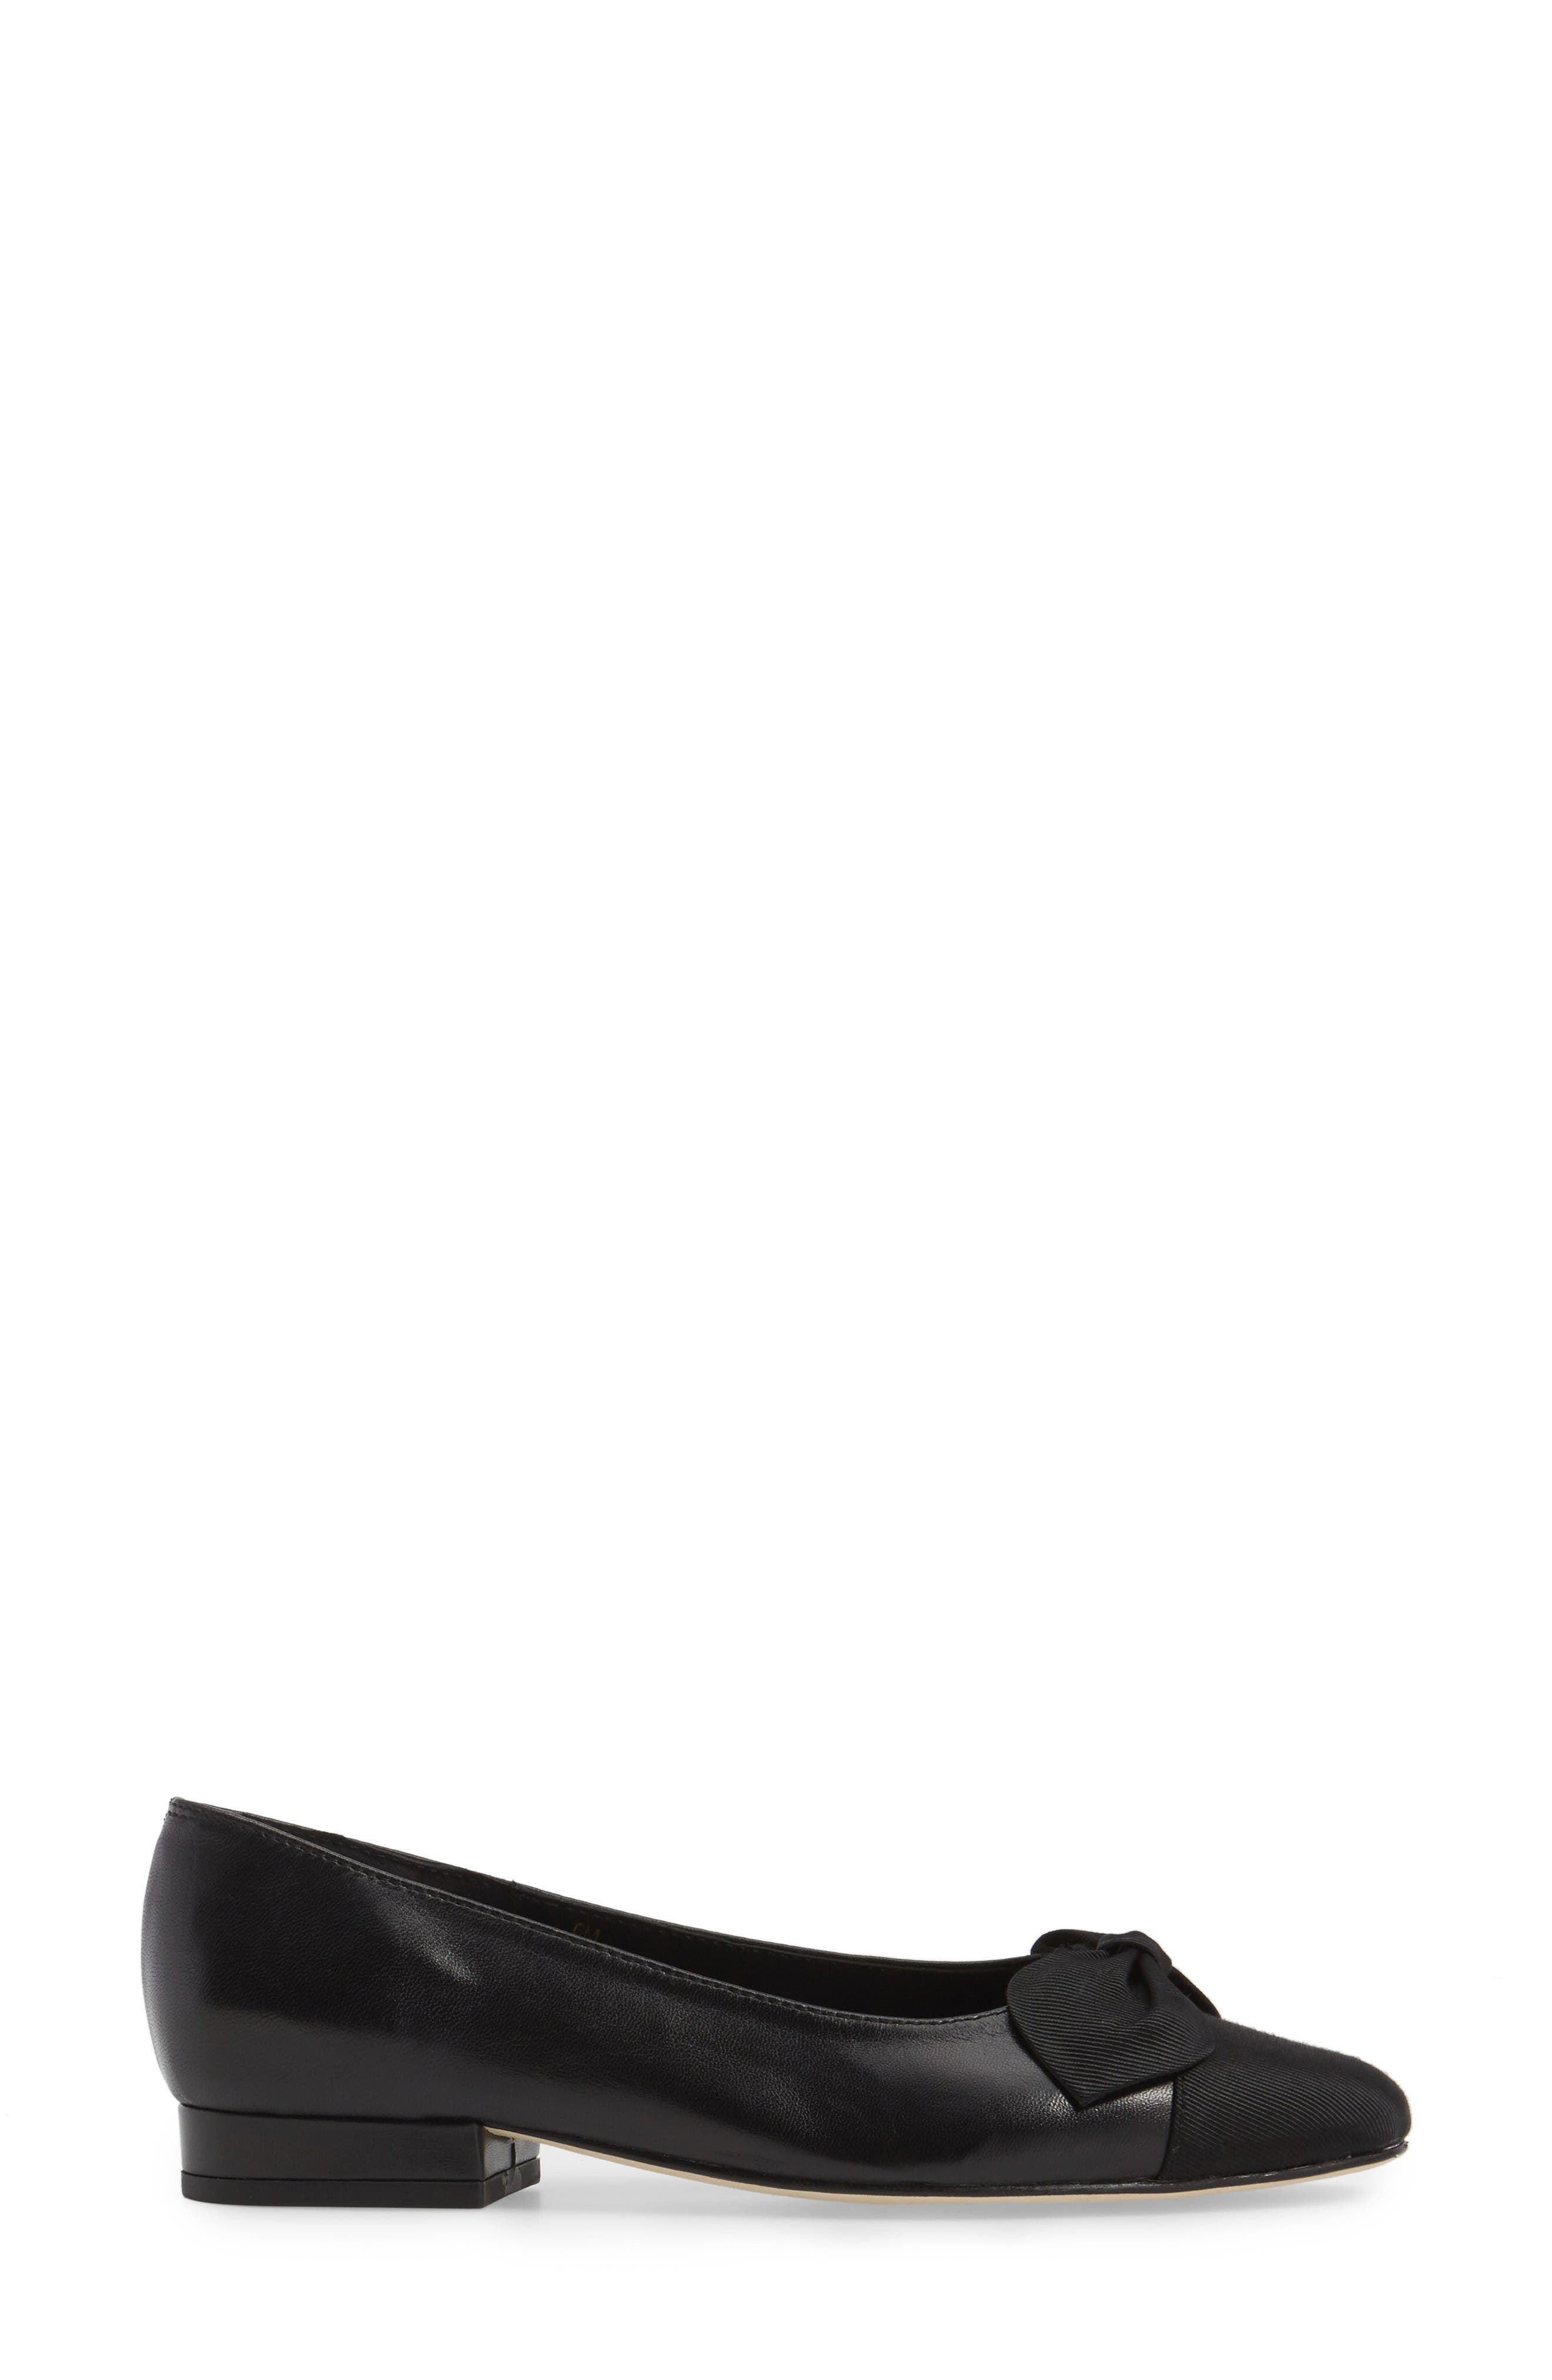 Alternate Image 3  - VANELi Favor Bow Flat (Women)